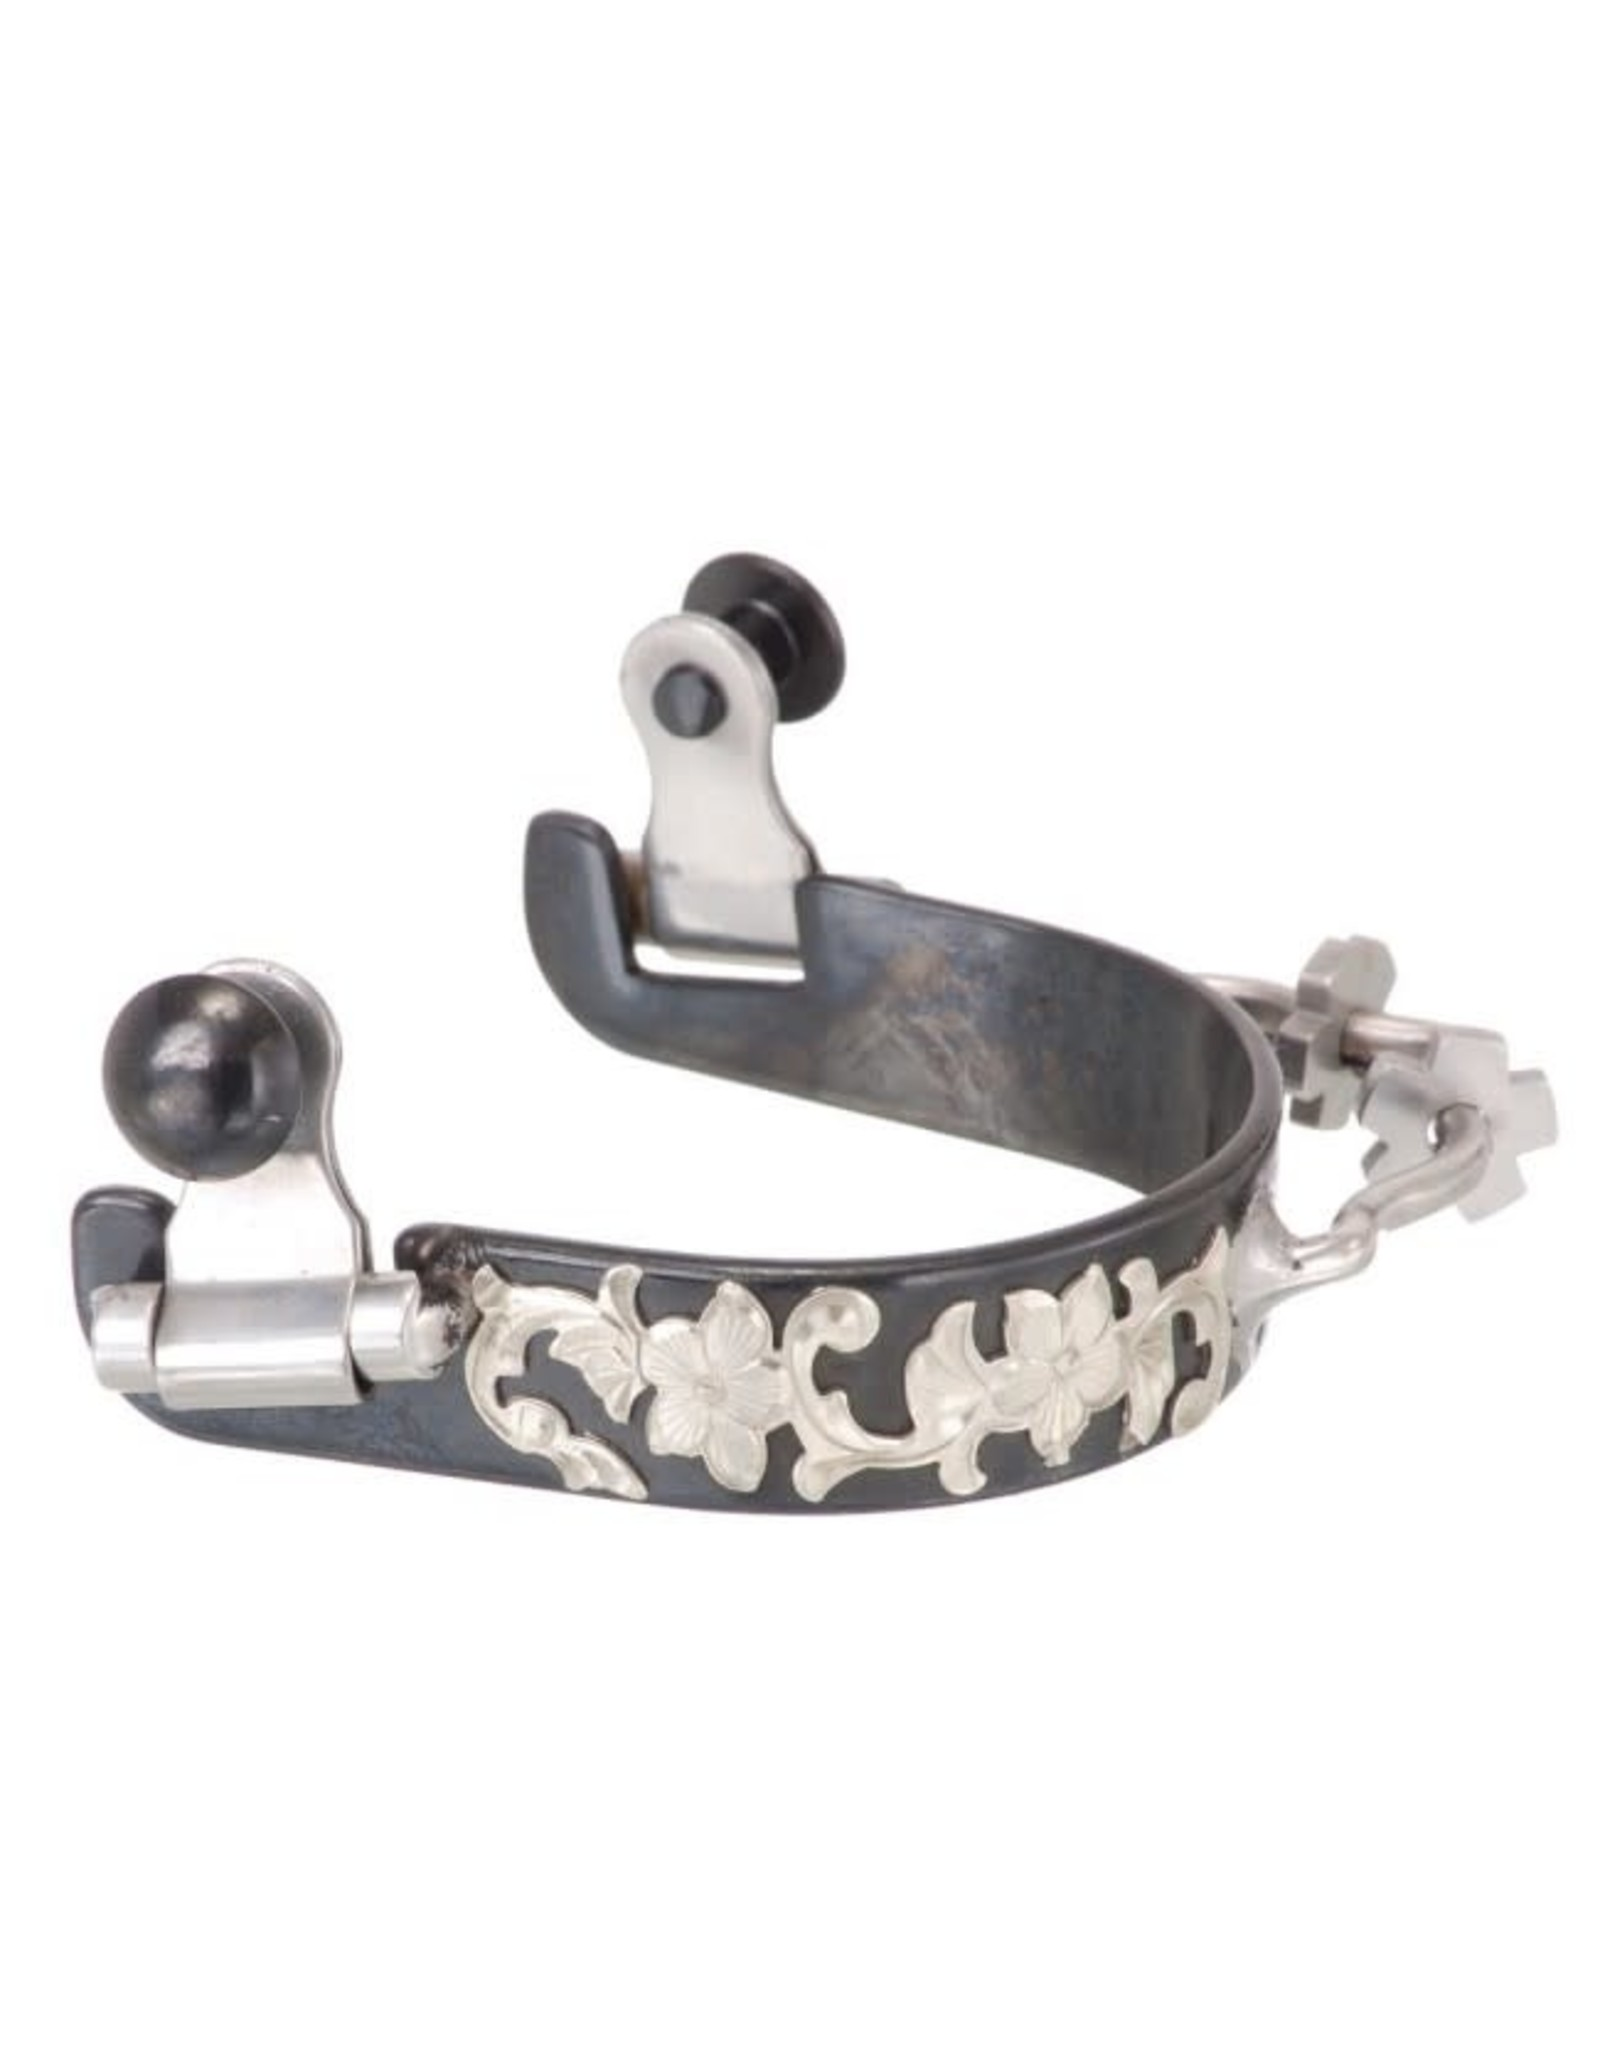 Tough 1 Spurs Black Steel Ladies Bumper with Engraved Floral Silver Overlay